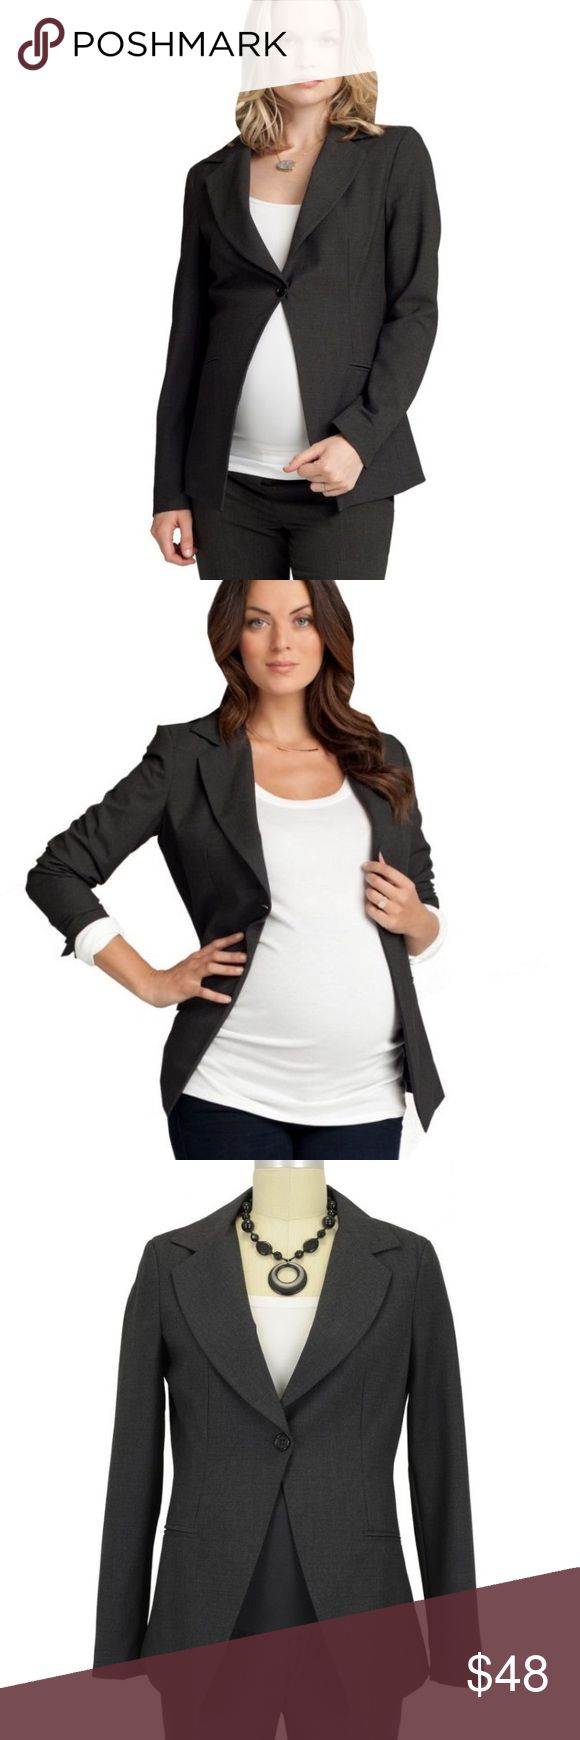 Ingrid & Isabel Maternity  One Button Blazer Never worn this. Didn't know it was a maternity blazer when I bought it. Isabel One Button Maternity Blazer (Charcoal Heather). A modern, contemporary maternity blazer featuring a single button closure with a tailored, slim fit. Notched collar Fully lined with a tailored shape Faux pockets Pair with our tailored trouser or even denim for a chic, casual look. Ingrid & Isabel Jackets & Coats Blazers